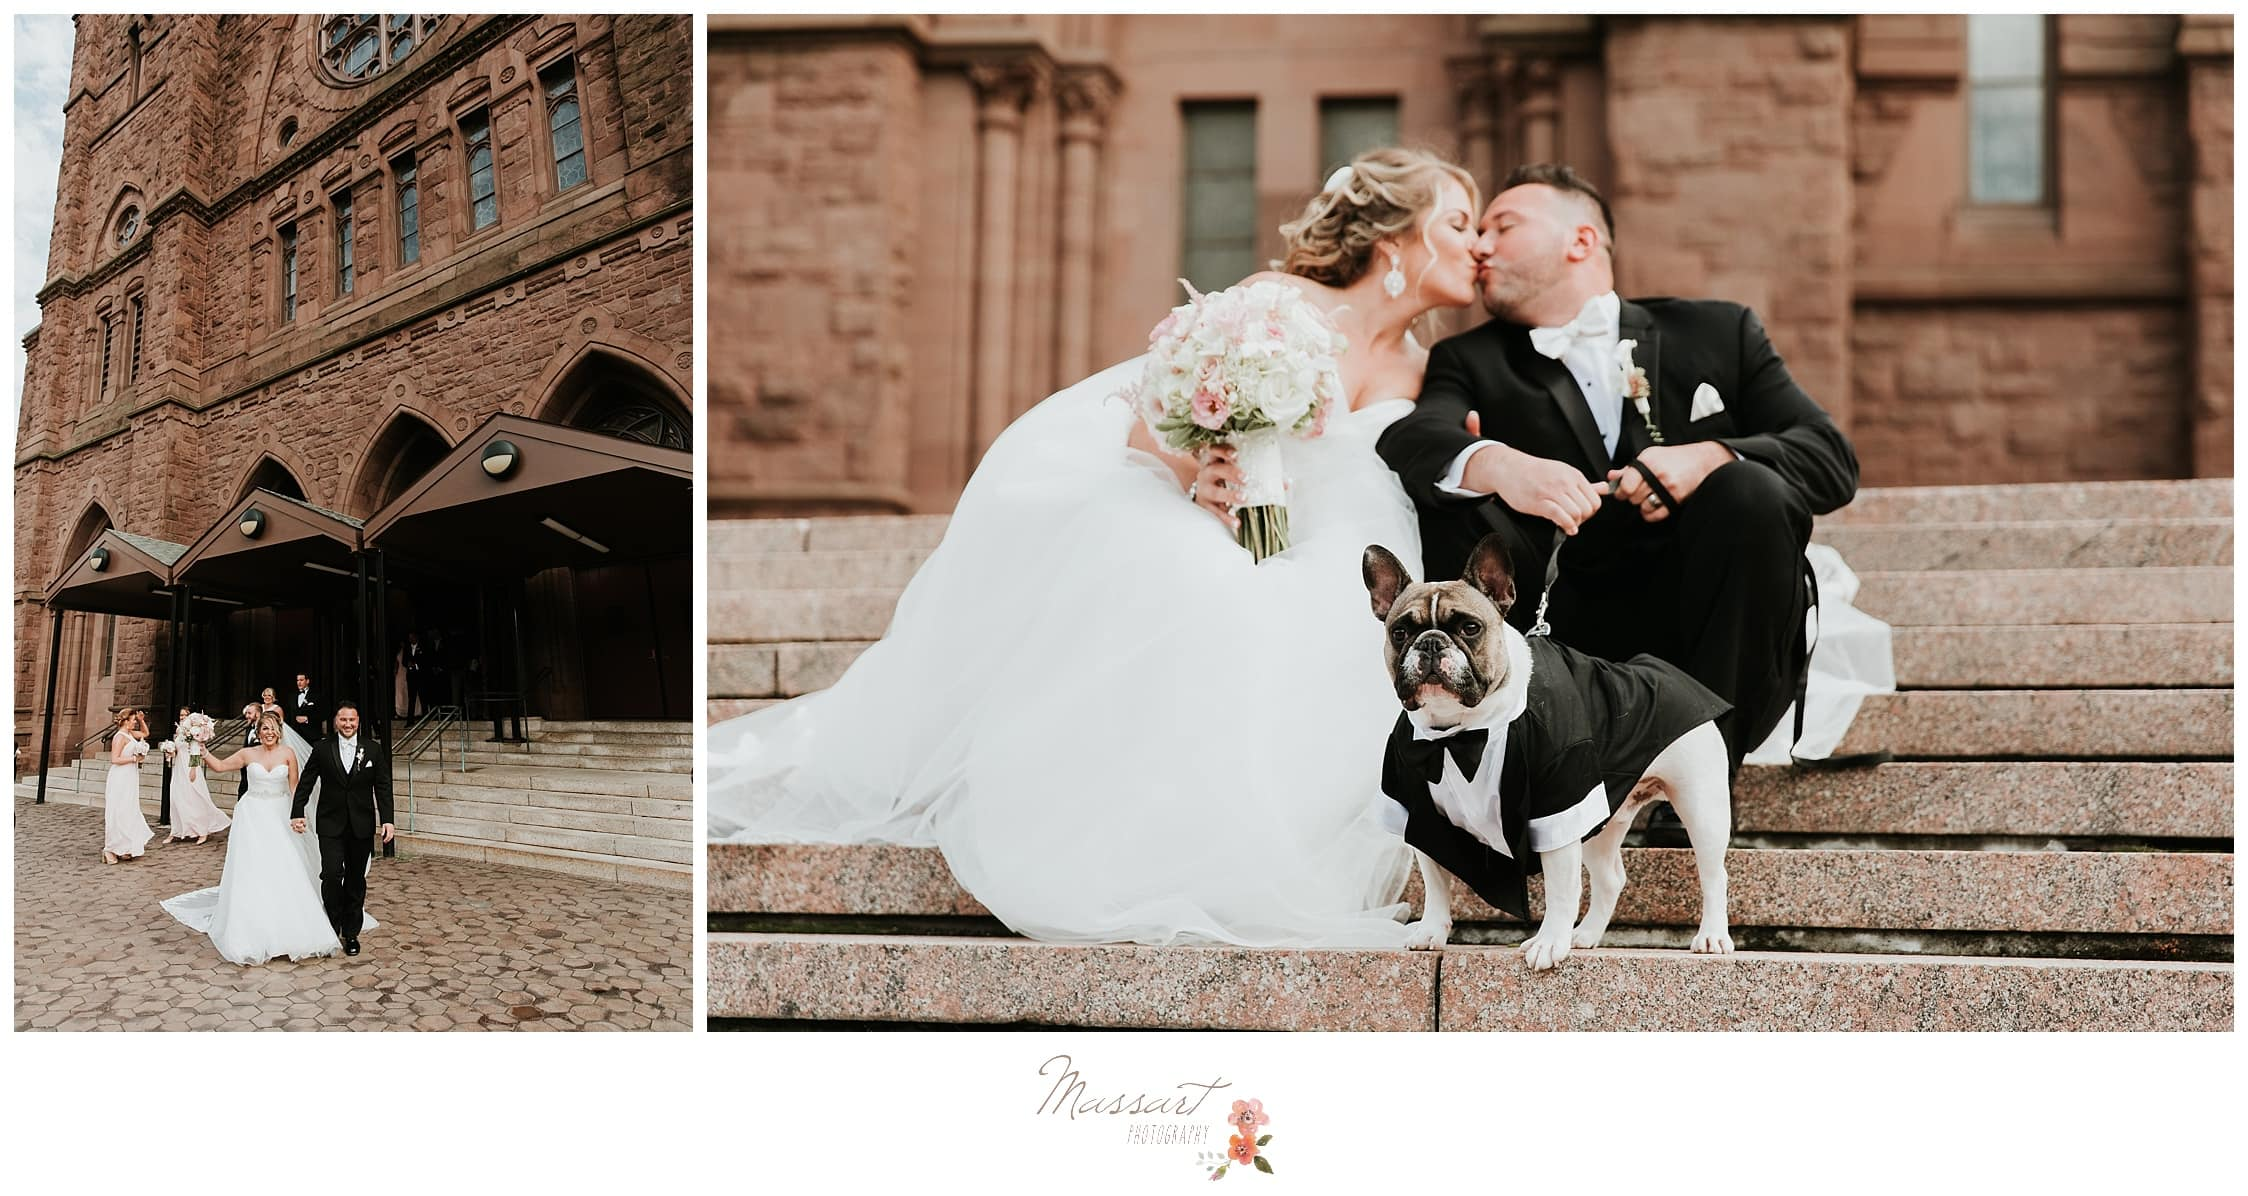 Bride and groom outside the church with their dog photographed by Massart Photography RI